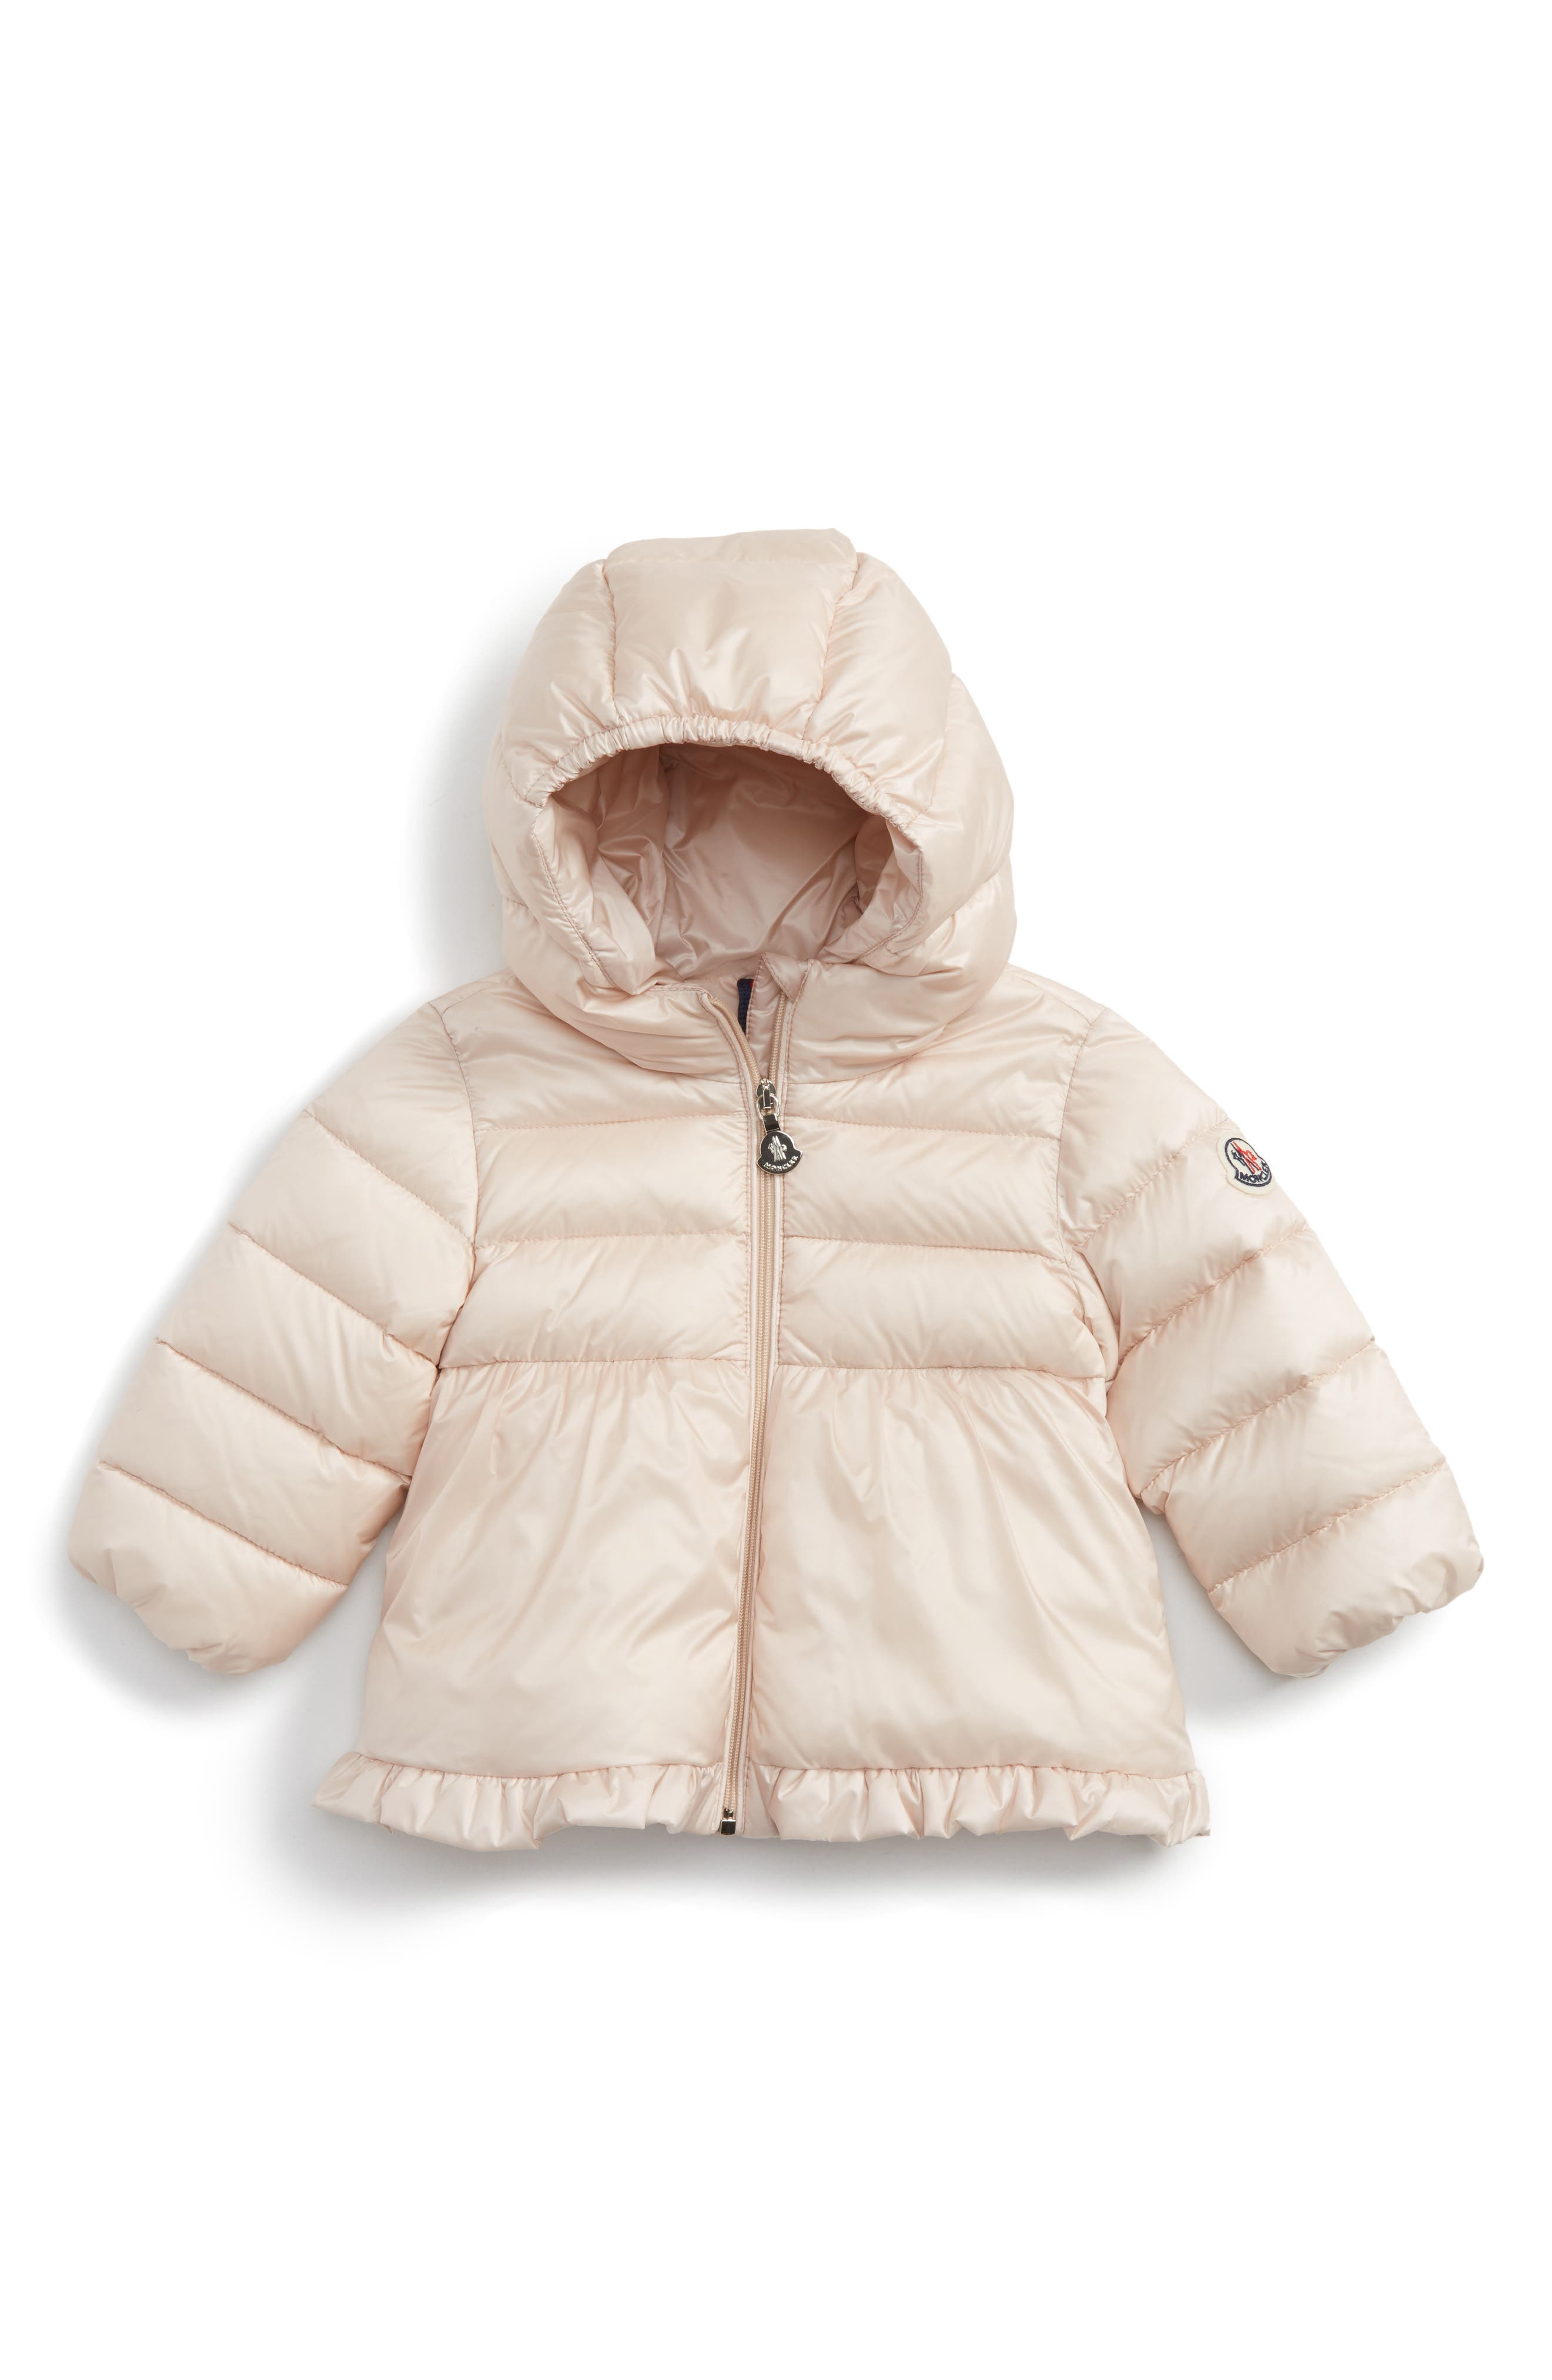 Alternate Image 1 Selected - Moncler Odile Hooded Water Resistant Down Jacket (Baby Girls)